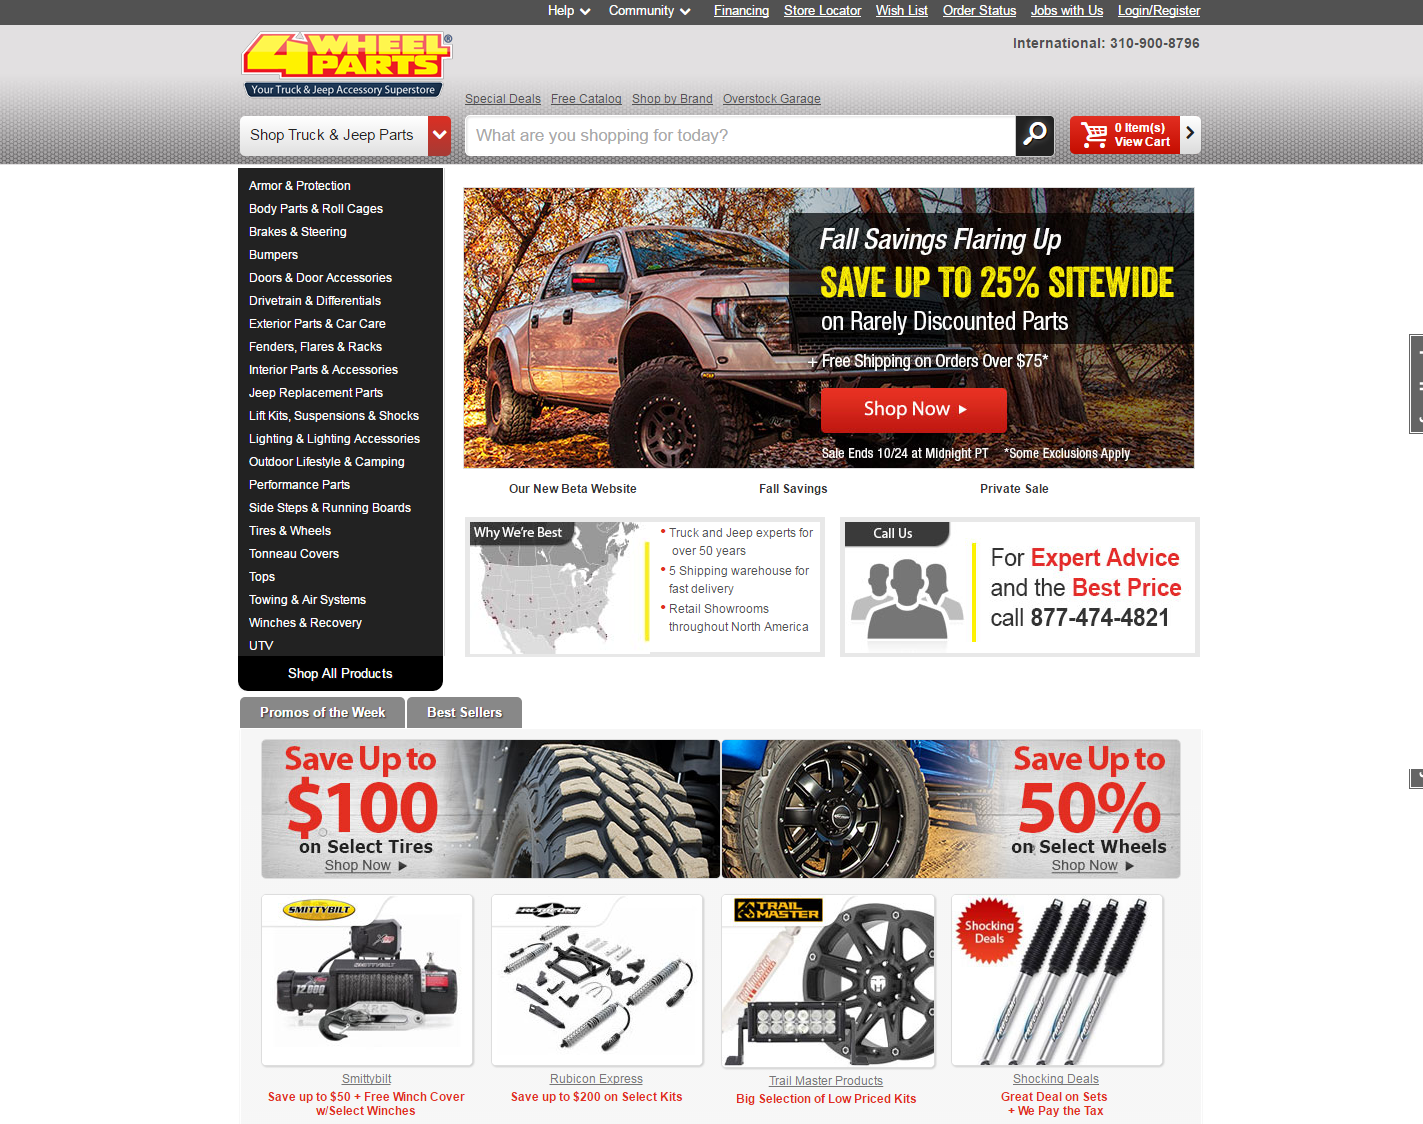 Scrutinize 38 Coupon Codes Of 4 Wheel Parts Get A Chance To Save